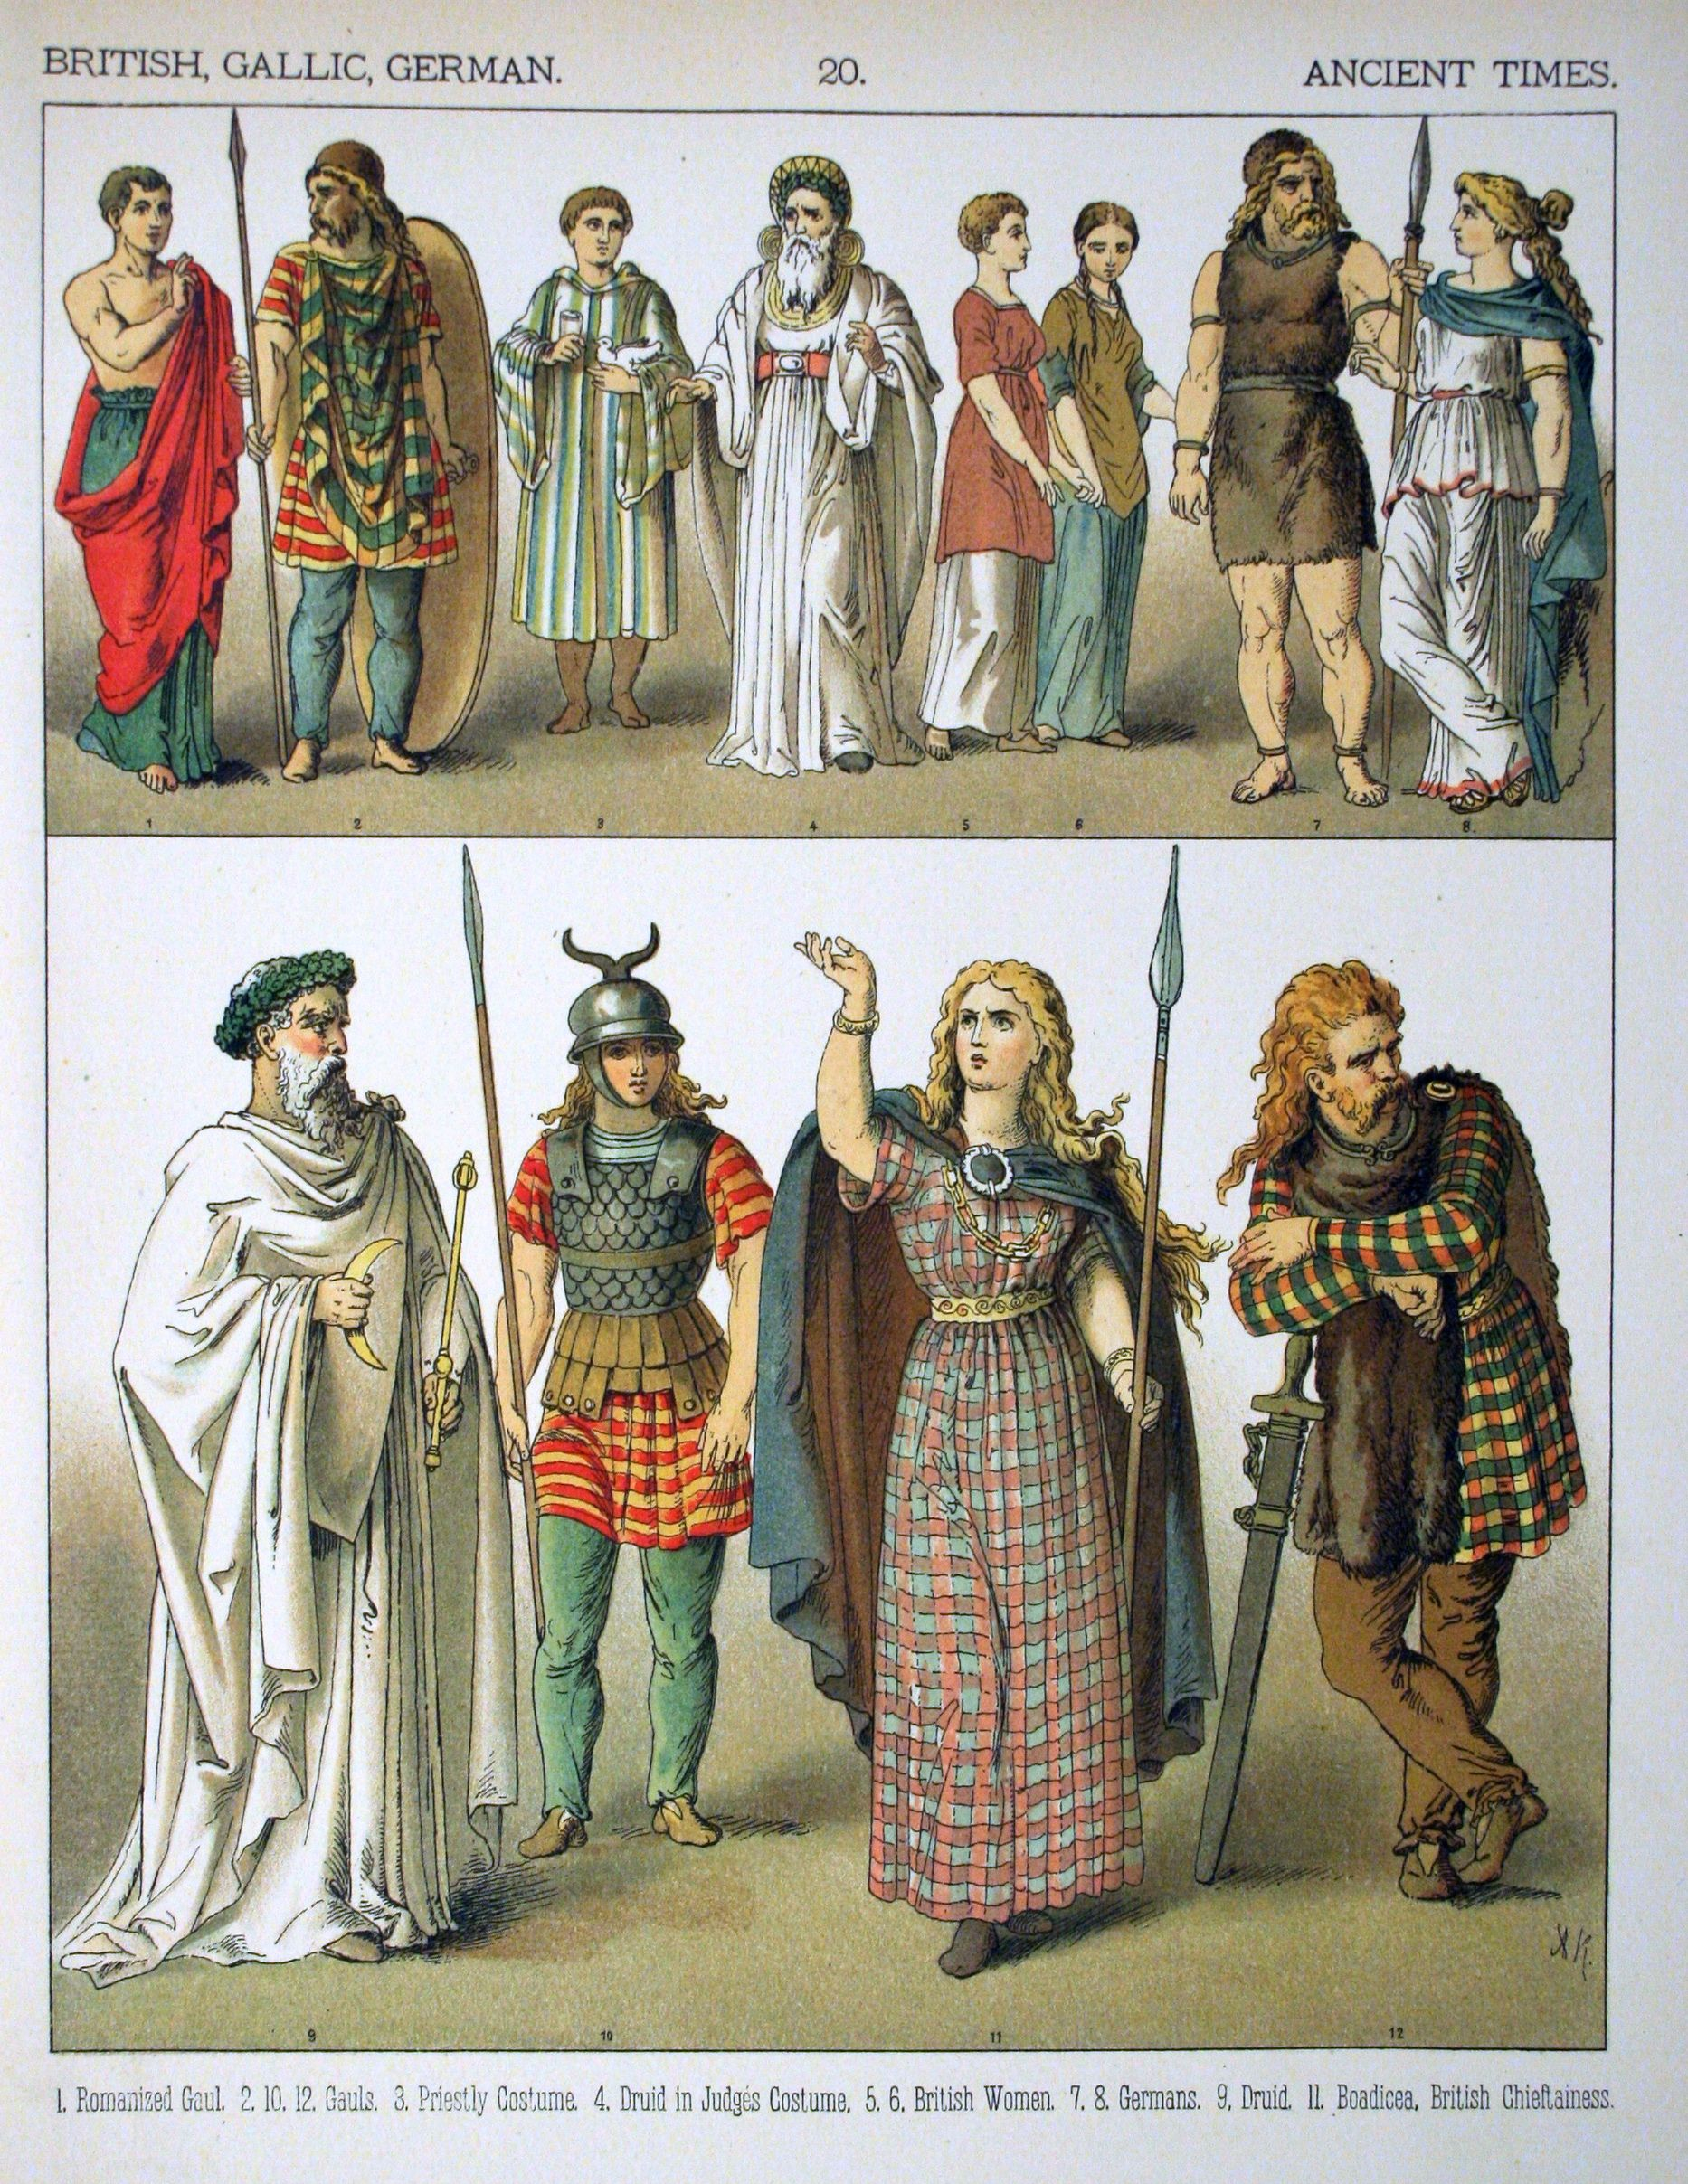 Description Ancient Times, British, Gallic, German - 020 ...